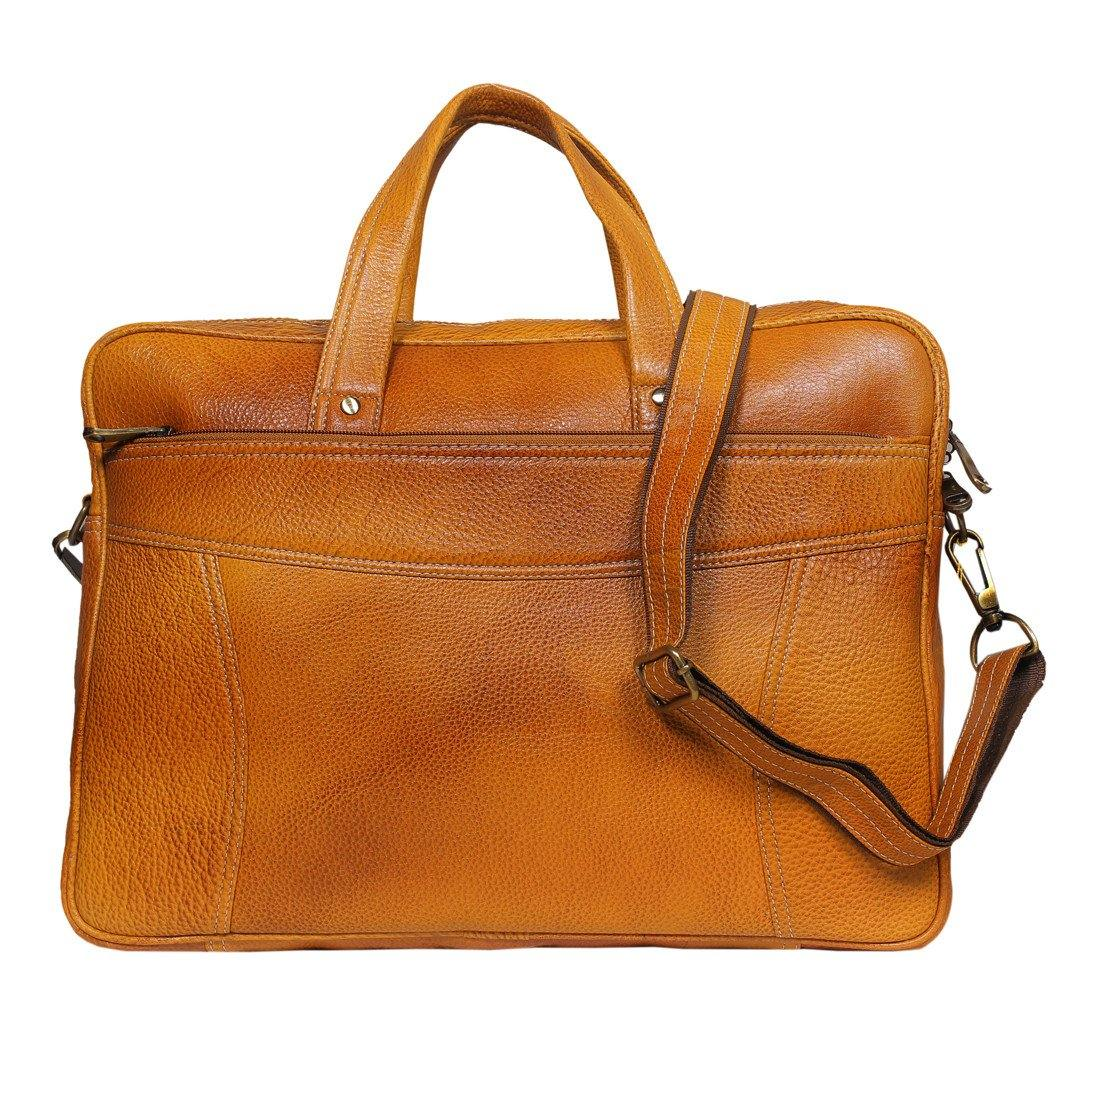 Leather World 9 Liter Rust Genuine Leather Designer Laptop with Zip Closure Travel Bag OB1008